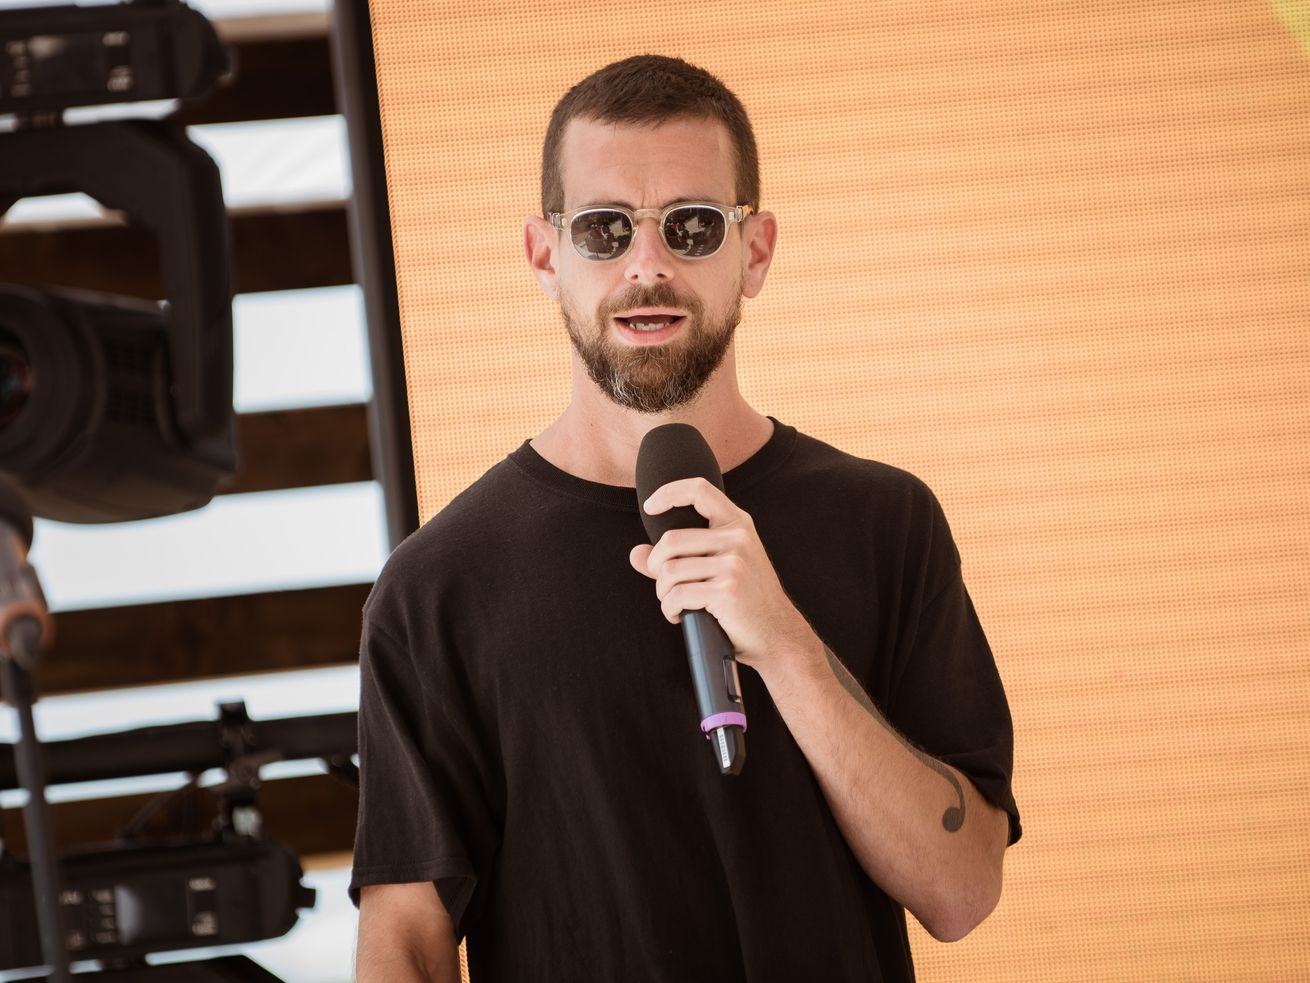 photo image As Pinterest and Facebook move to shut down anti-vaxxers, Twitter's Jack Dorsey appeared on a podcast with one